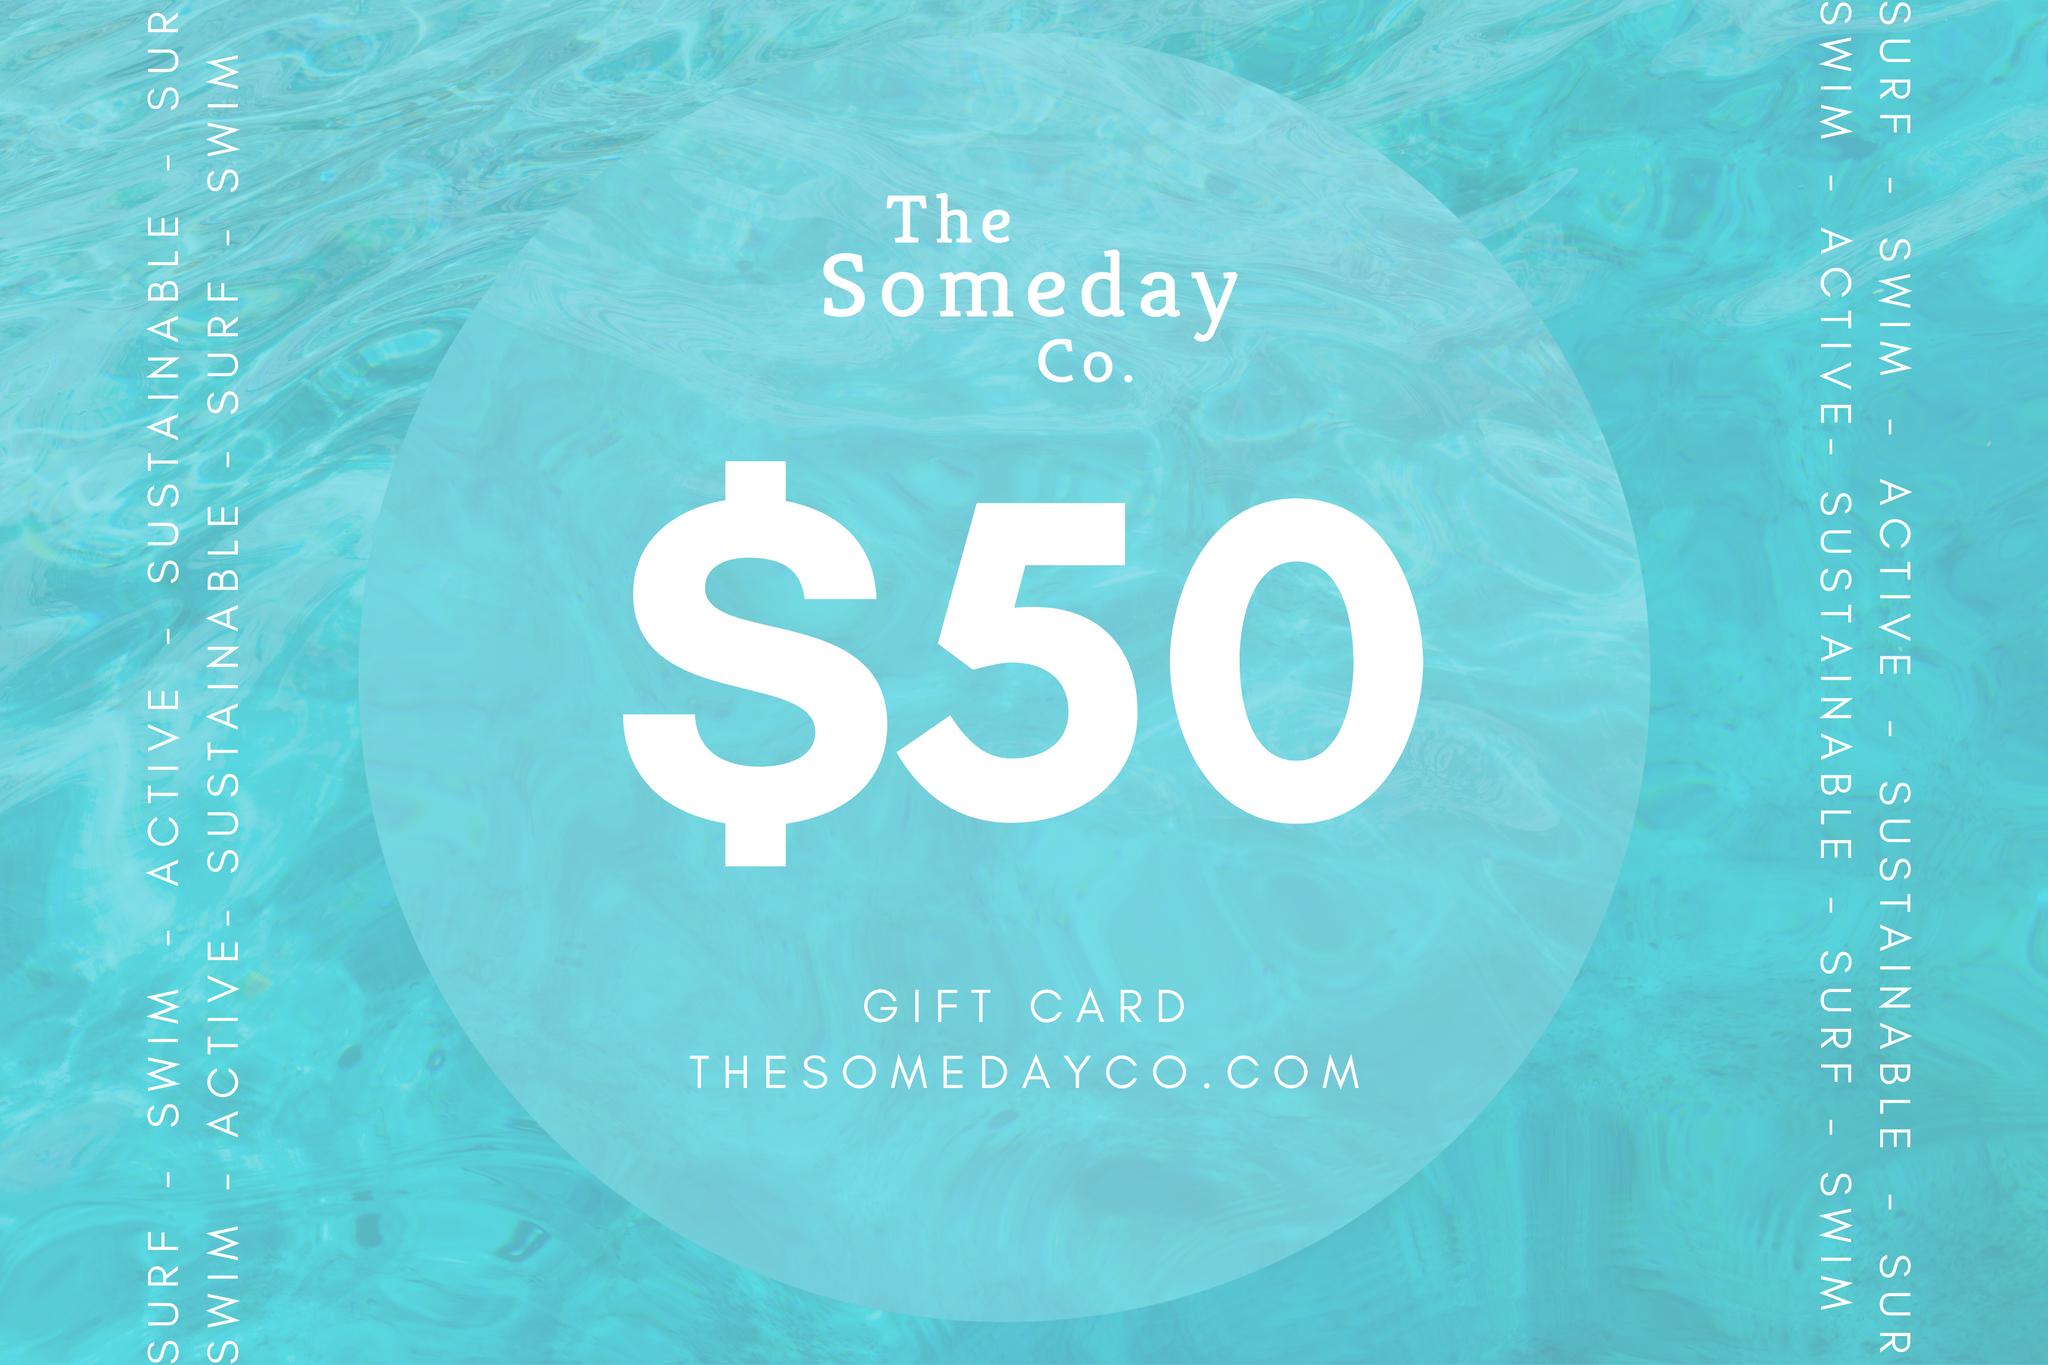 The Perfect Sustainable Gift - a Gift Card from The Someday Co.